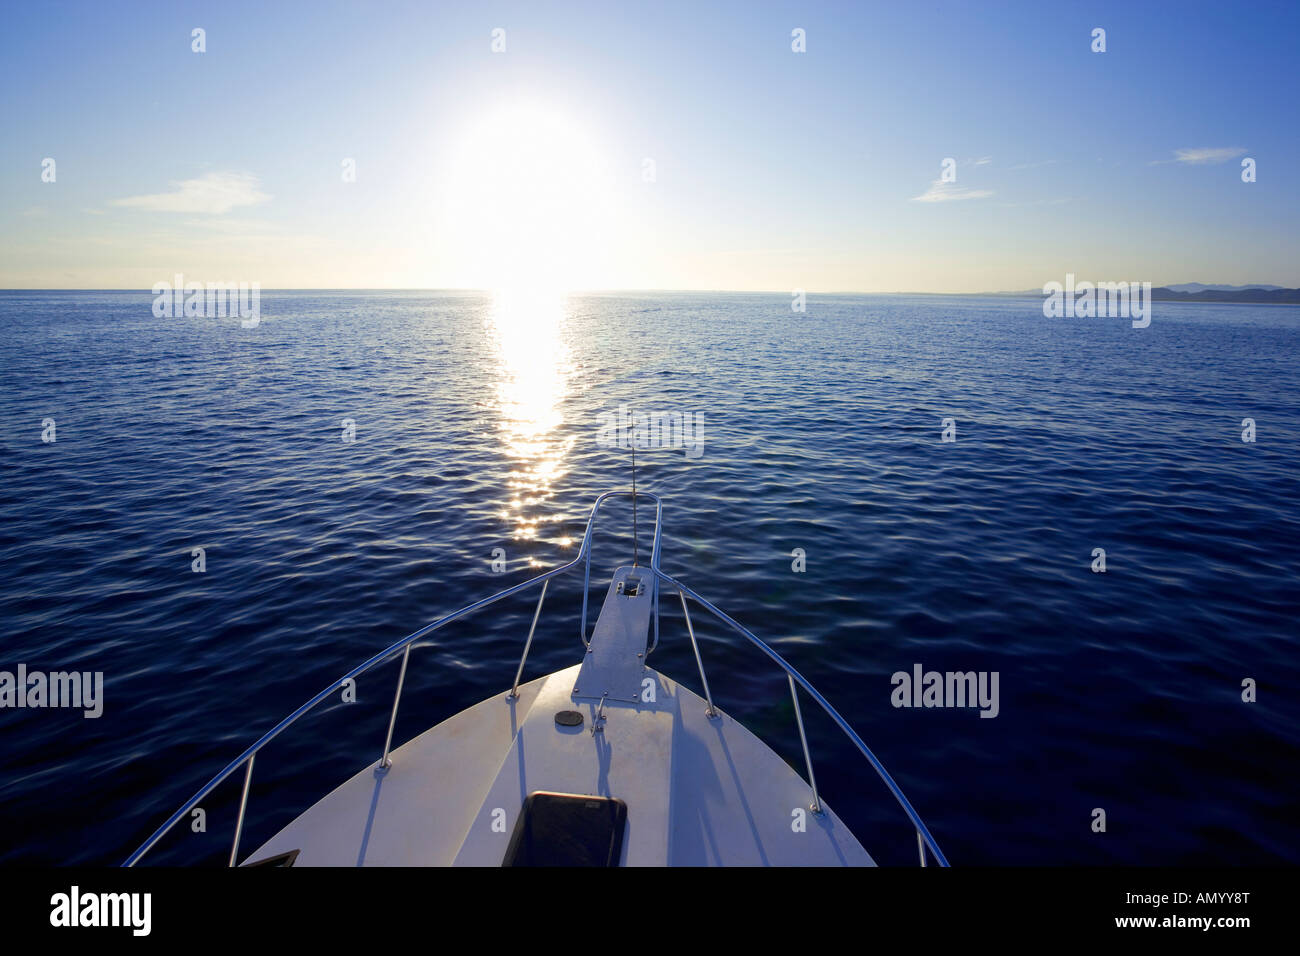 Bow of sport fishing boat yacht facing into sunrise offshore in Baja, Mexico - Stock Image